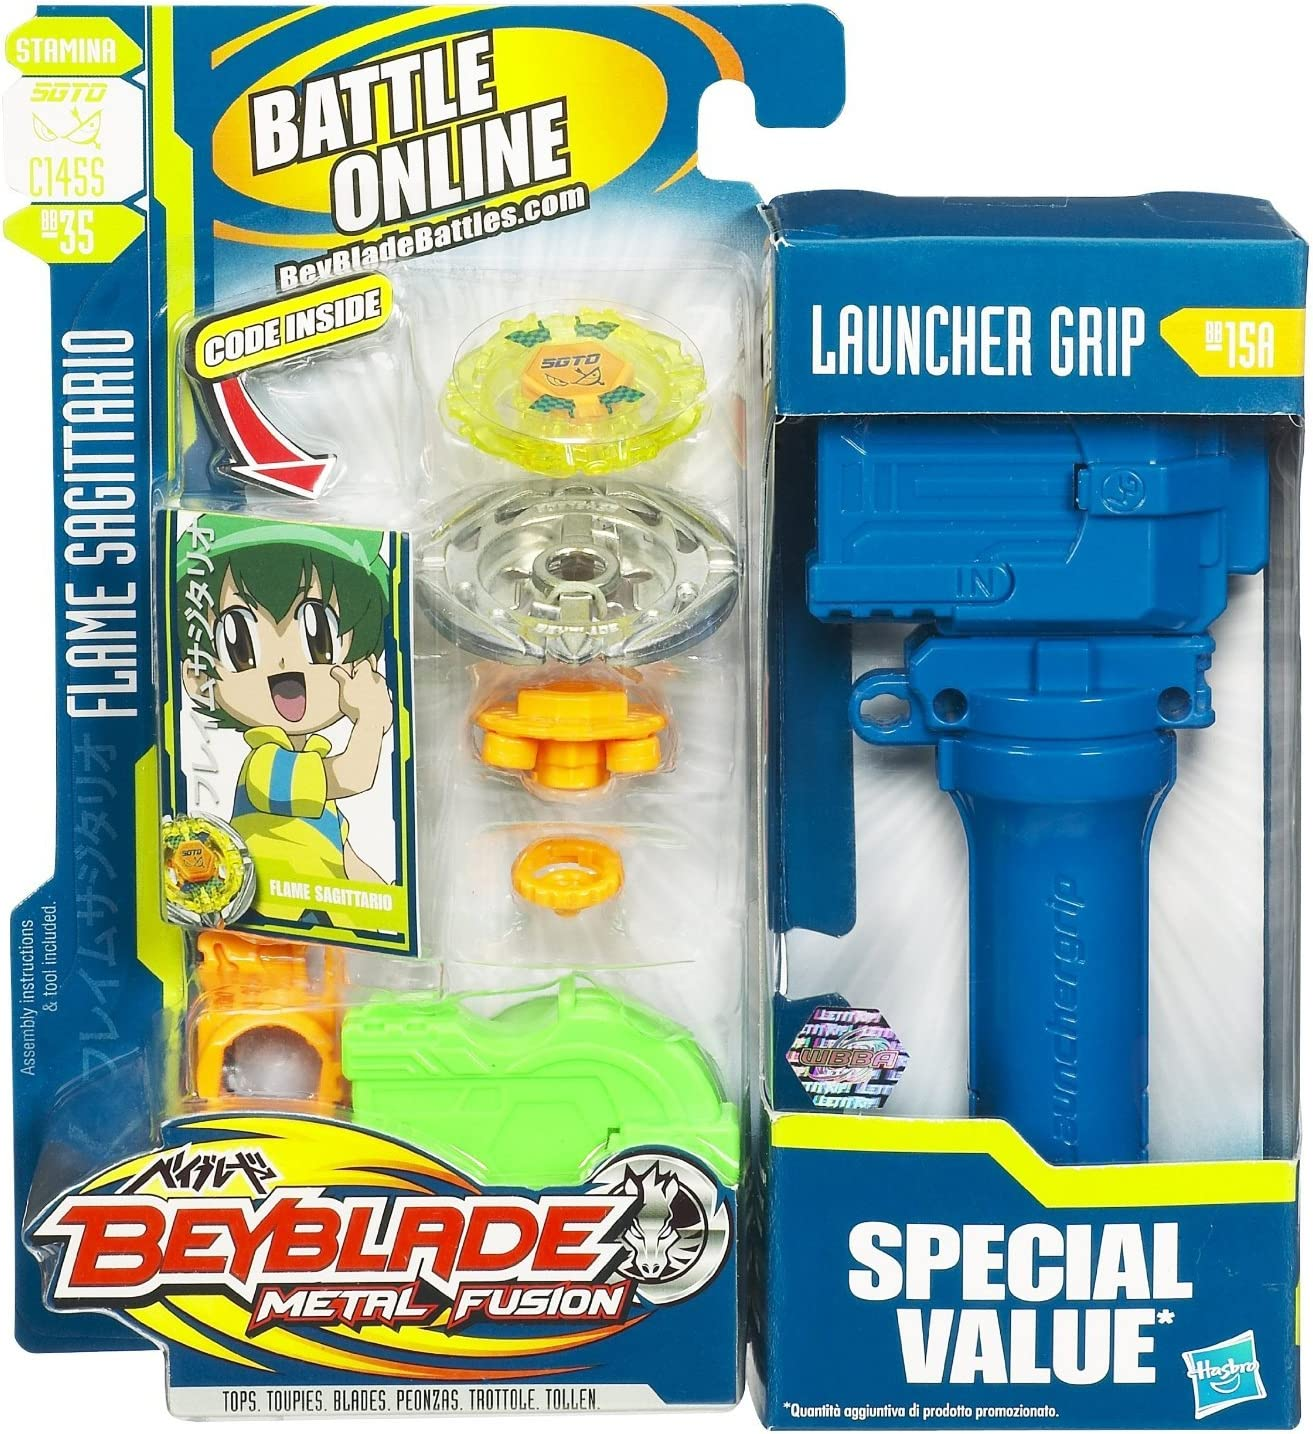 Beyblade Metal Fusion Value Pack by Beyblade: Amazon.es: Juguetes ...